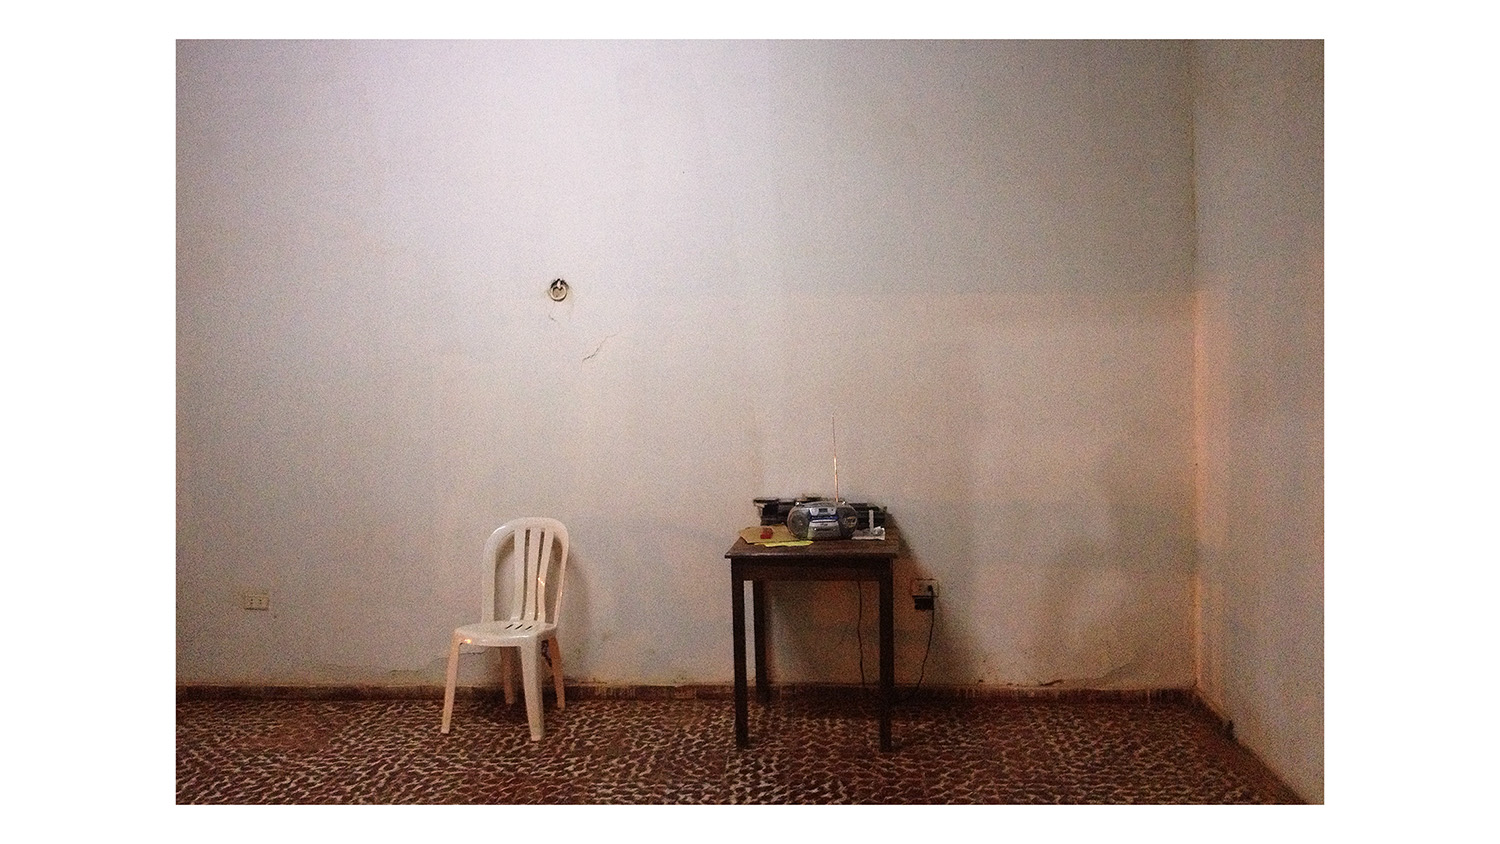 Untitled (Room)